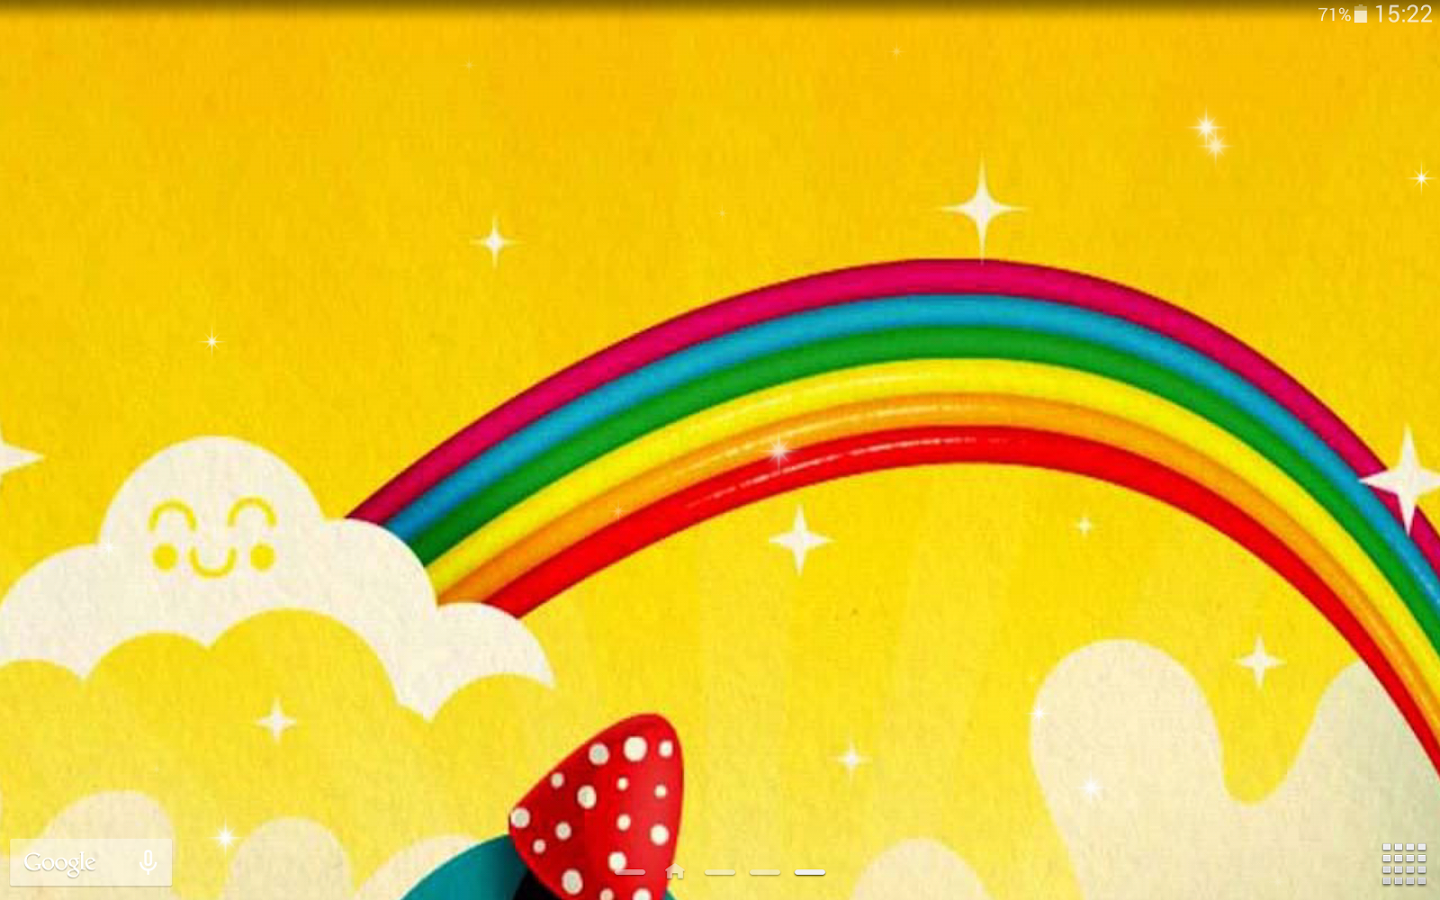 Pelangi Wallpaper Bergerak Apl Android Di Google Play